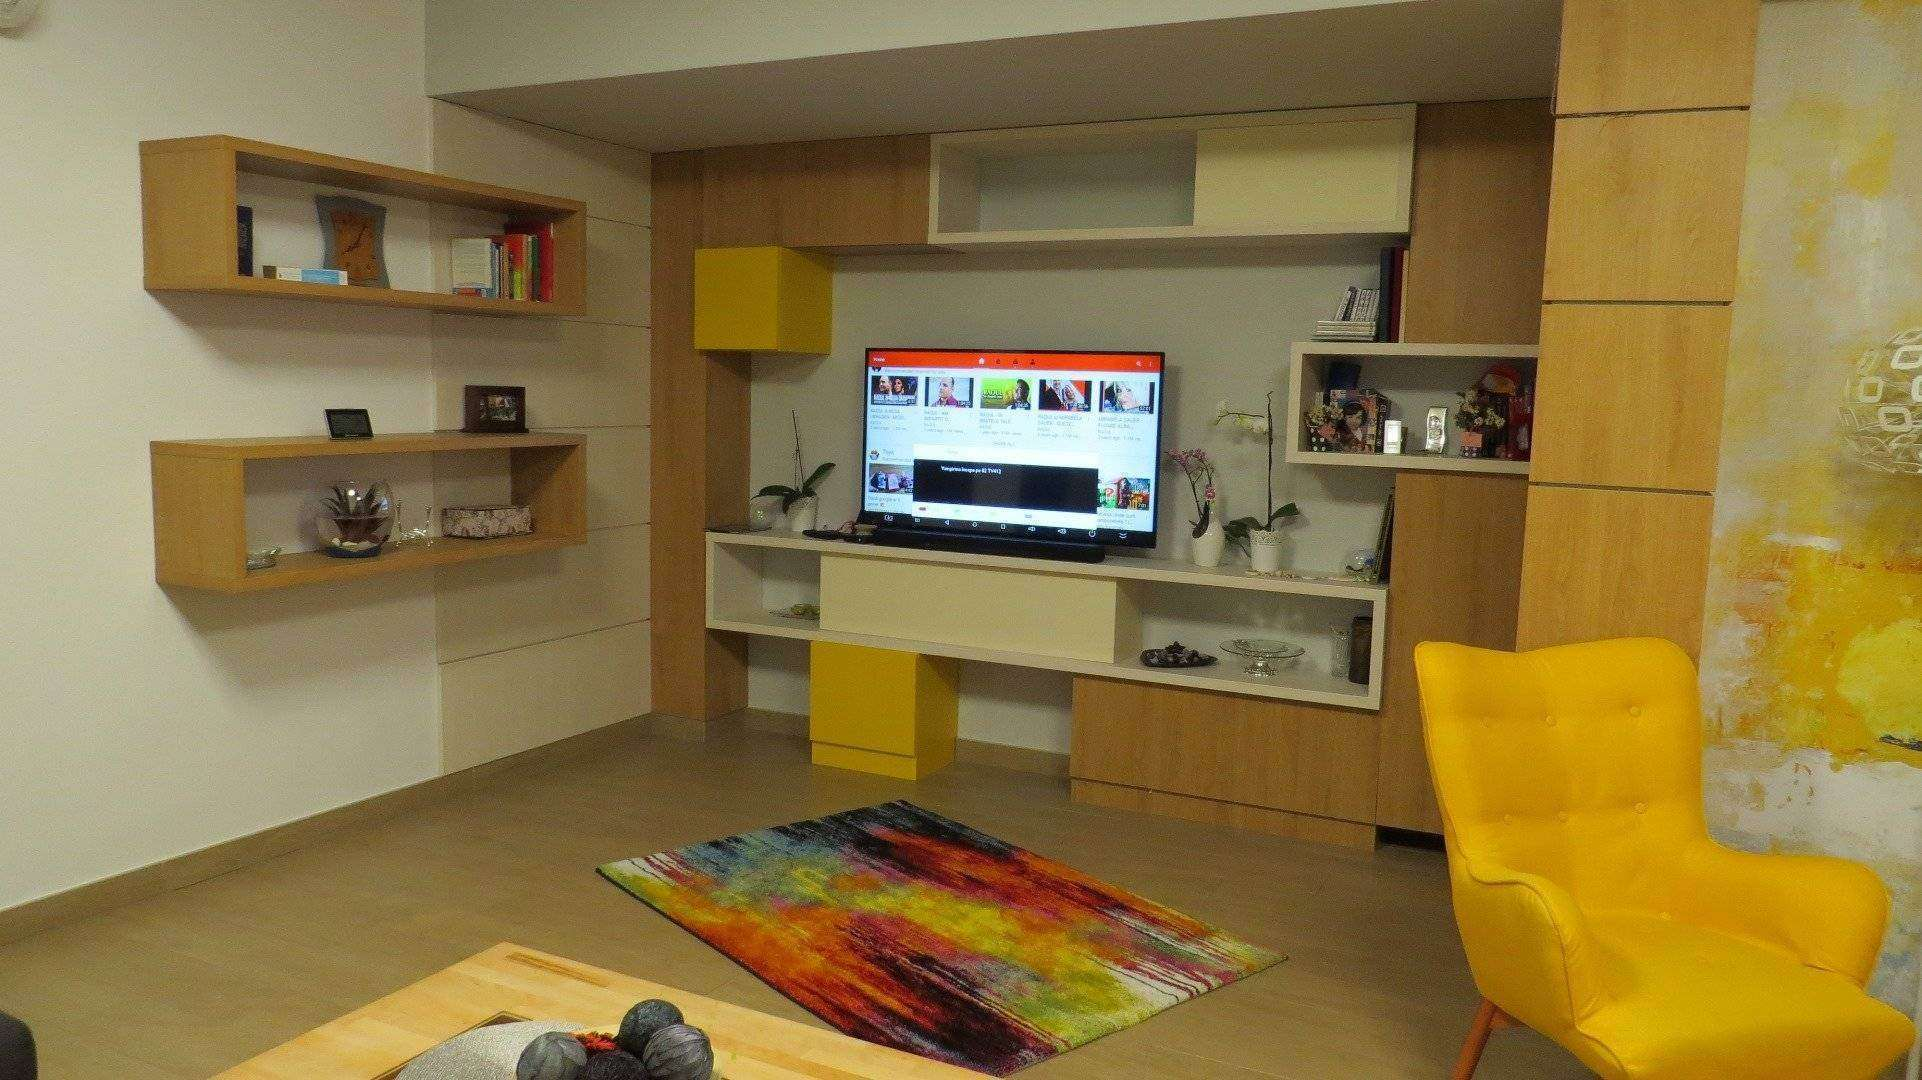 <a href=&quot;design mobila living &quot;>mobila living moderna <img src='https://www.unican.ro/wp-content/themes/vita/img/dreapta.png' class='pull-right hidden-xs' style='margin-right:-10px;margin-top:-10px; max-height:41px'></a>